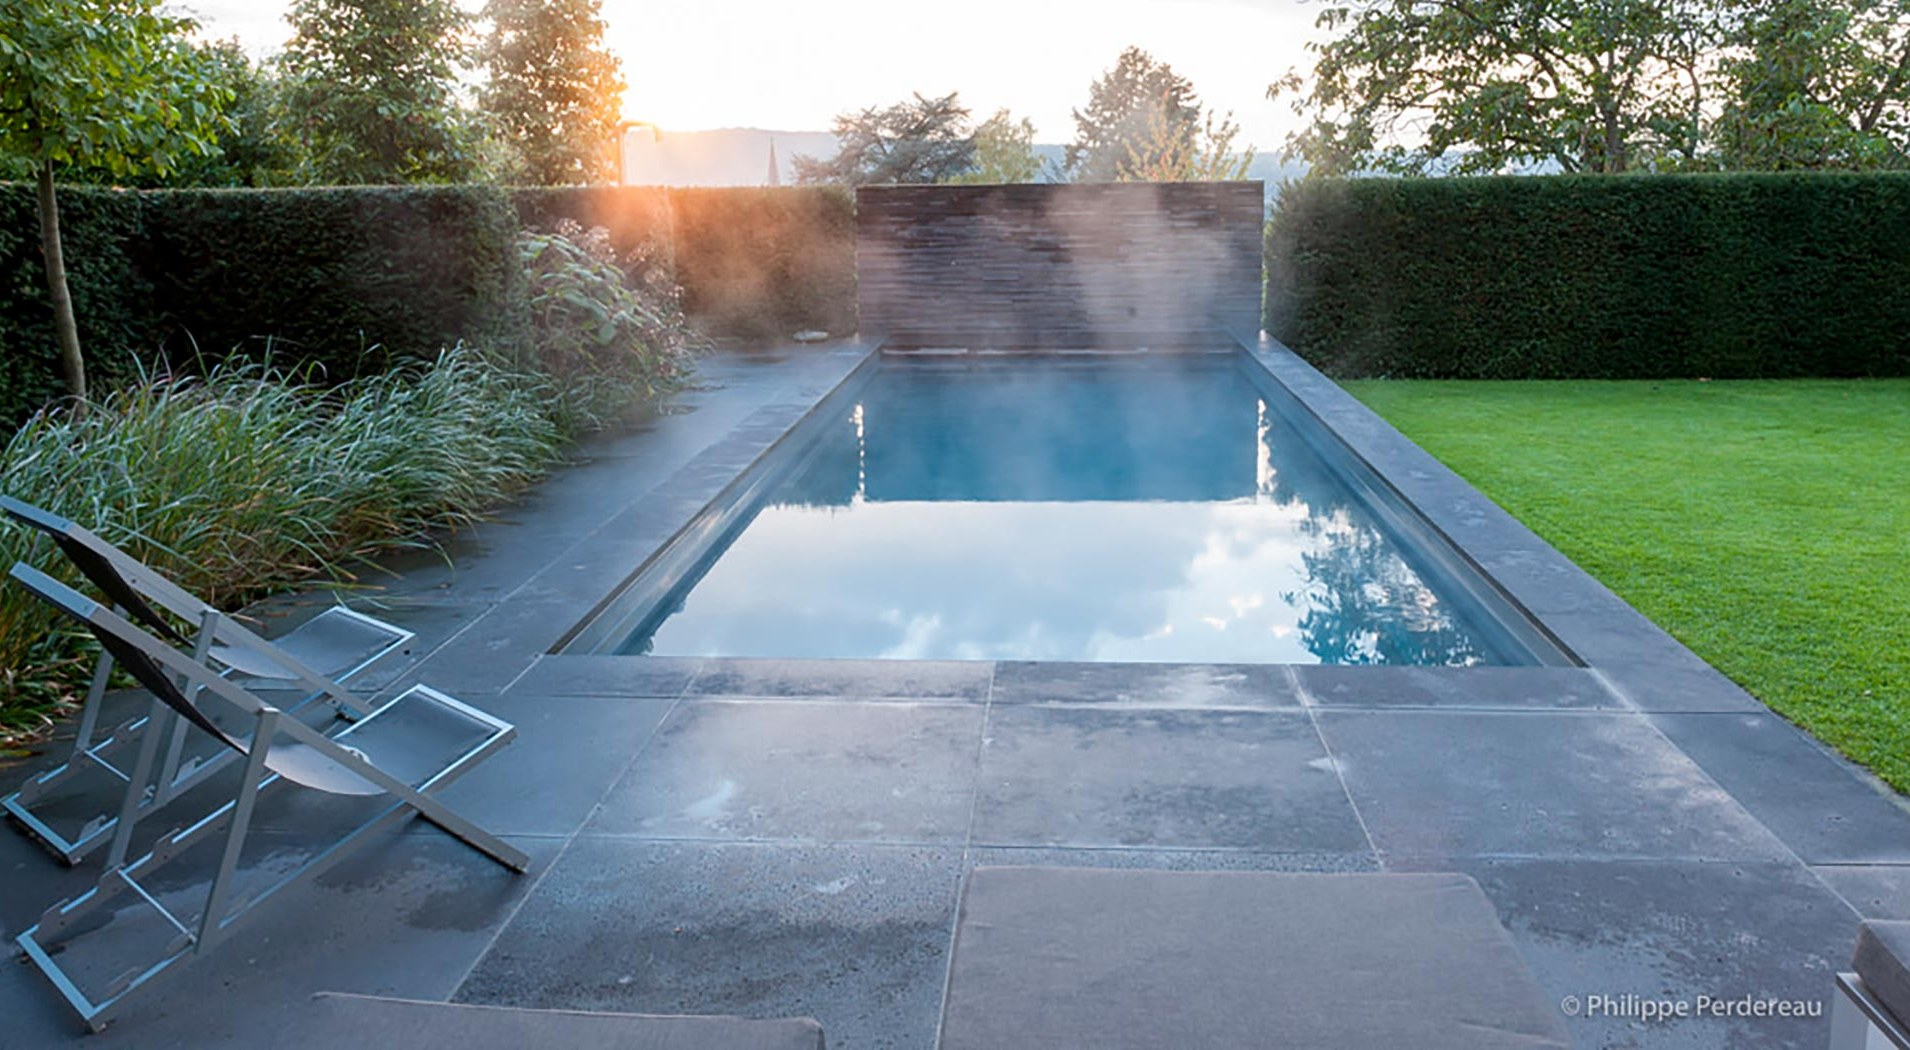 Garden with steaming pool on stone patio in parallel to grass